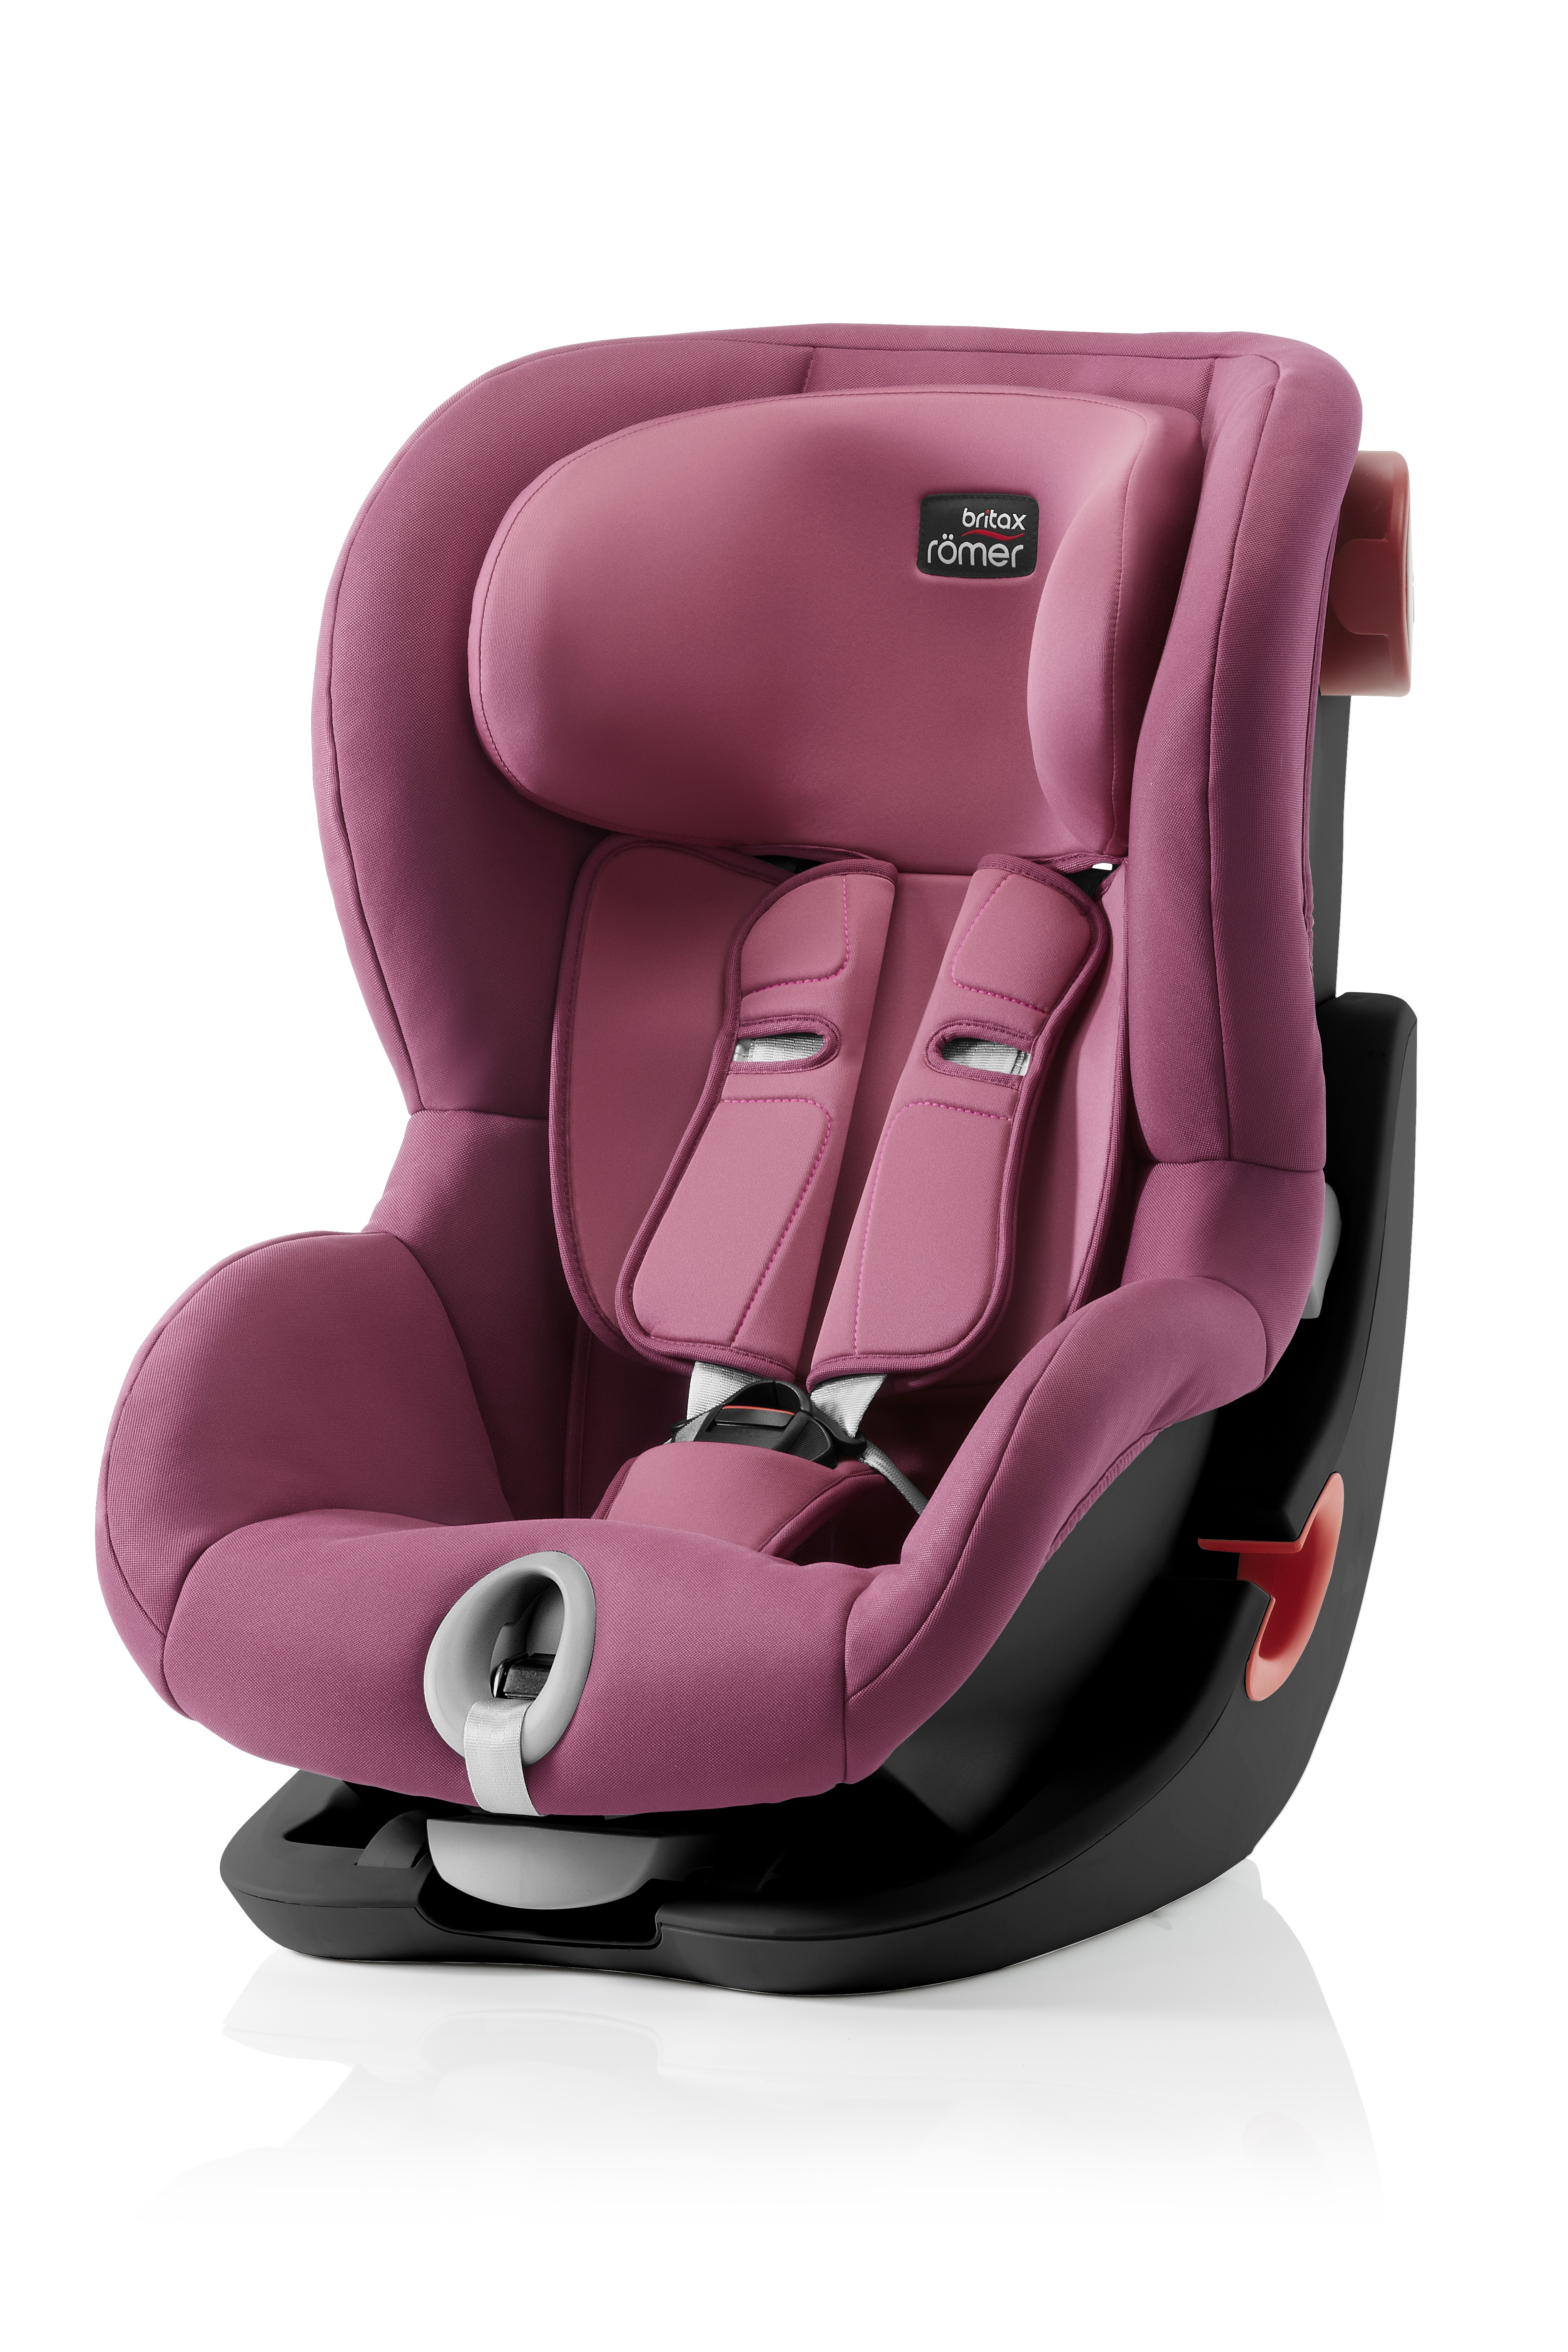 Автокресло Britax Roemer King II Black Series Wine Rose Trendline, цвет: розовыйBritax R?mer <br>Автокресло Britax Roemer King II Black Series Wine Rose Trendline, цвет: розовый<br>